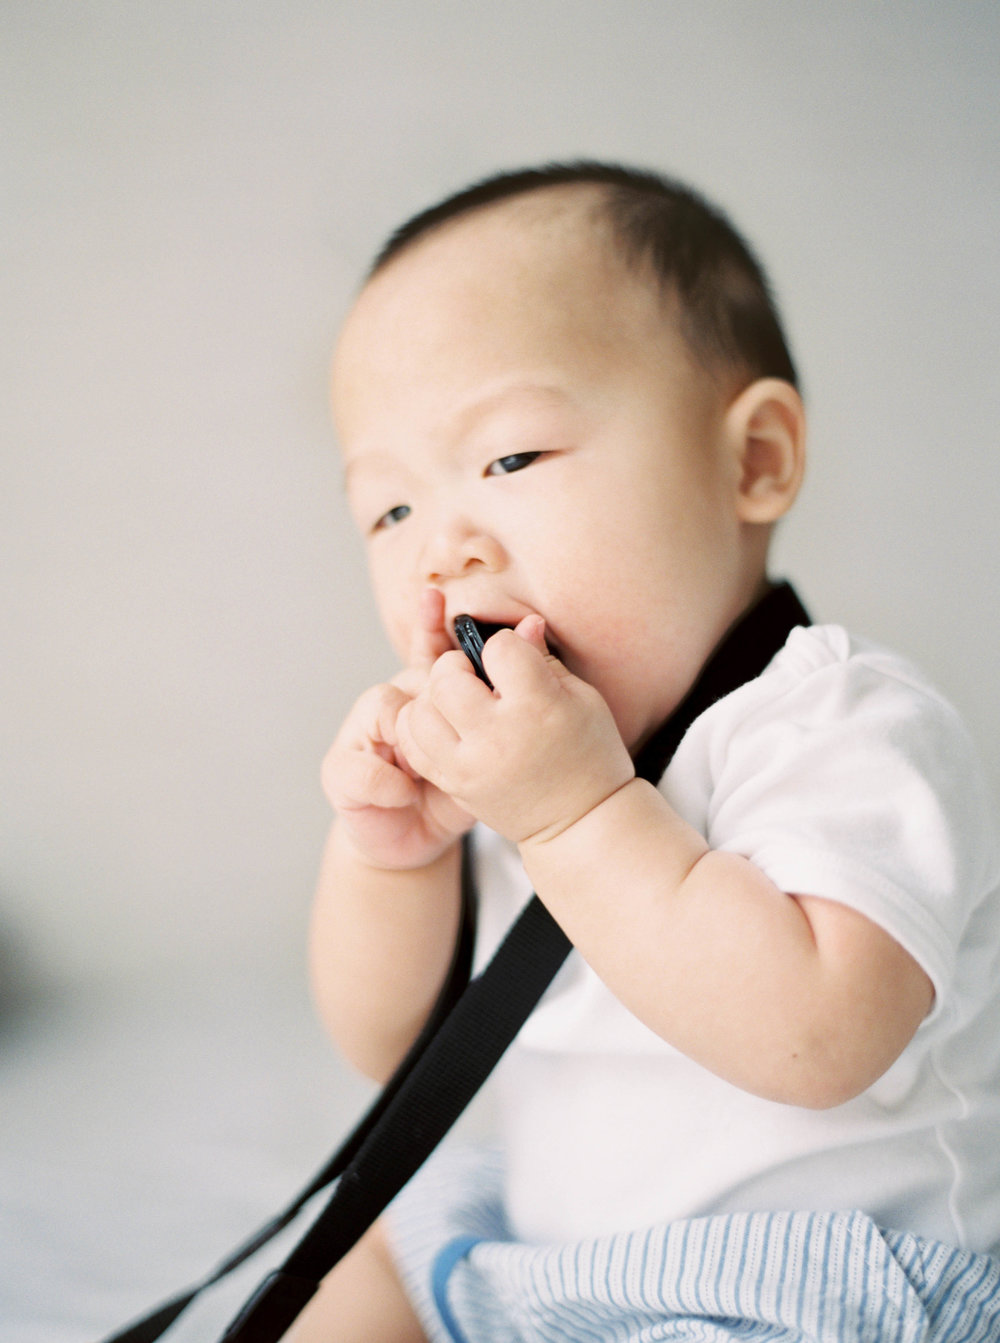 Cody-At Home-Simple-Baby Photography-8 Months Old-Studio June-Film Photography-Jakarta-18.jpg